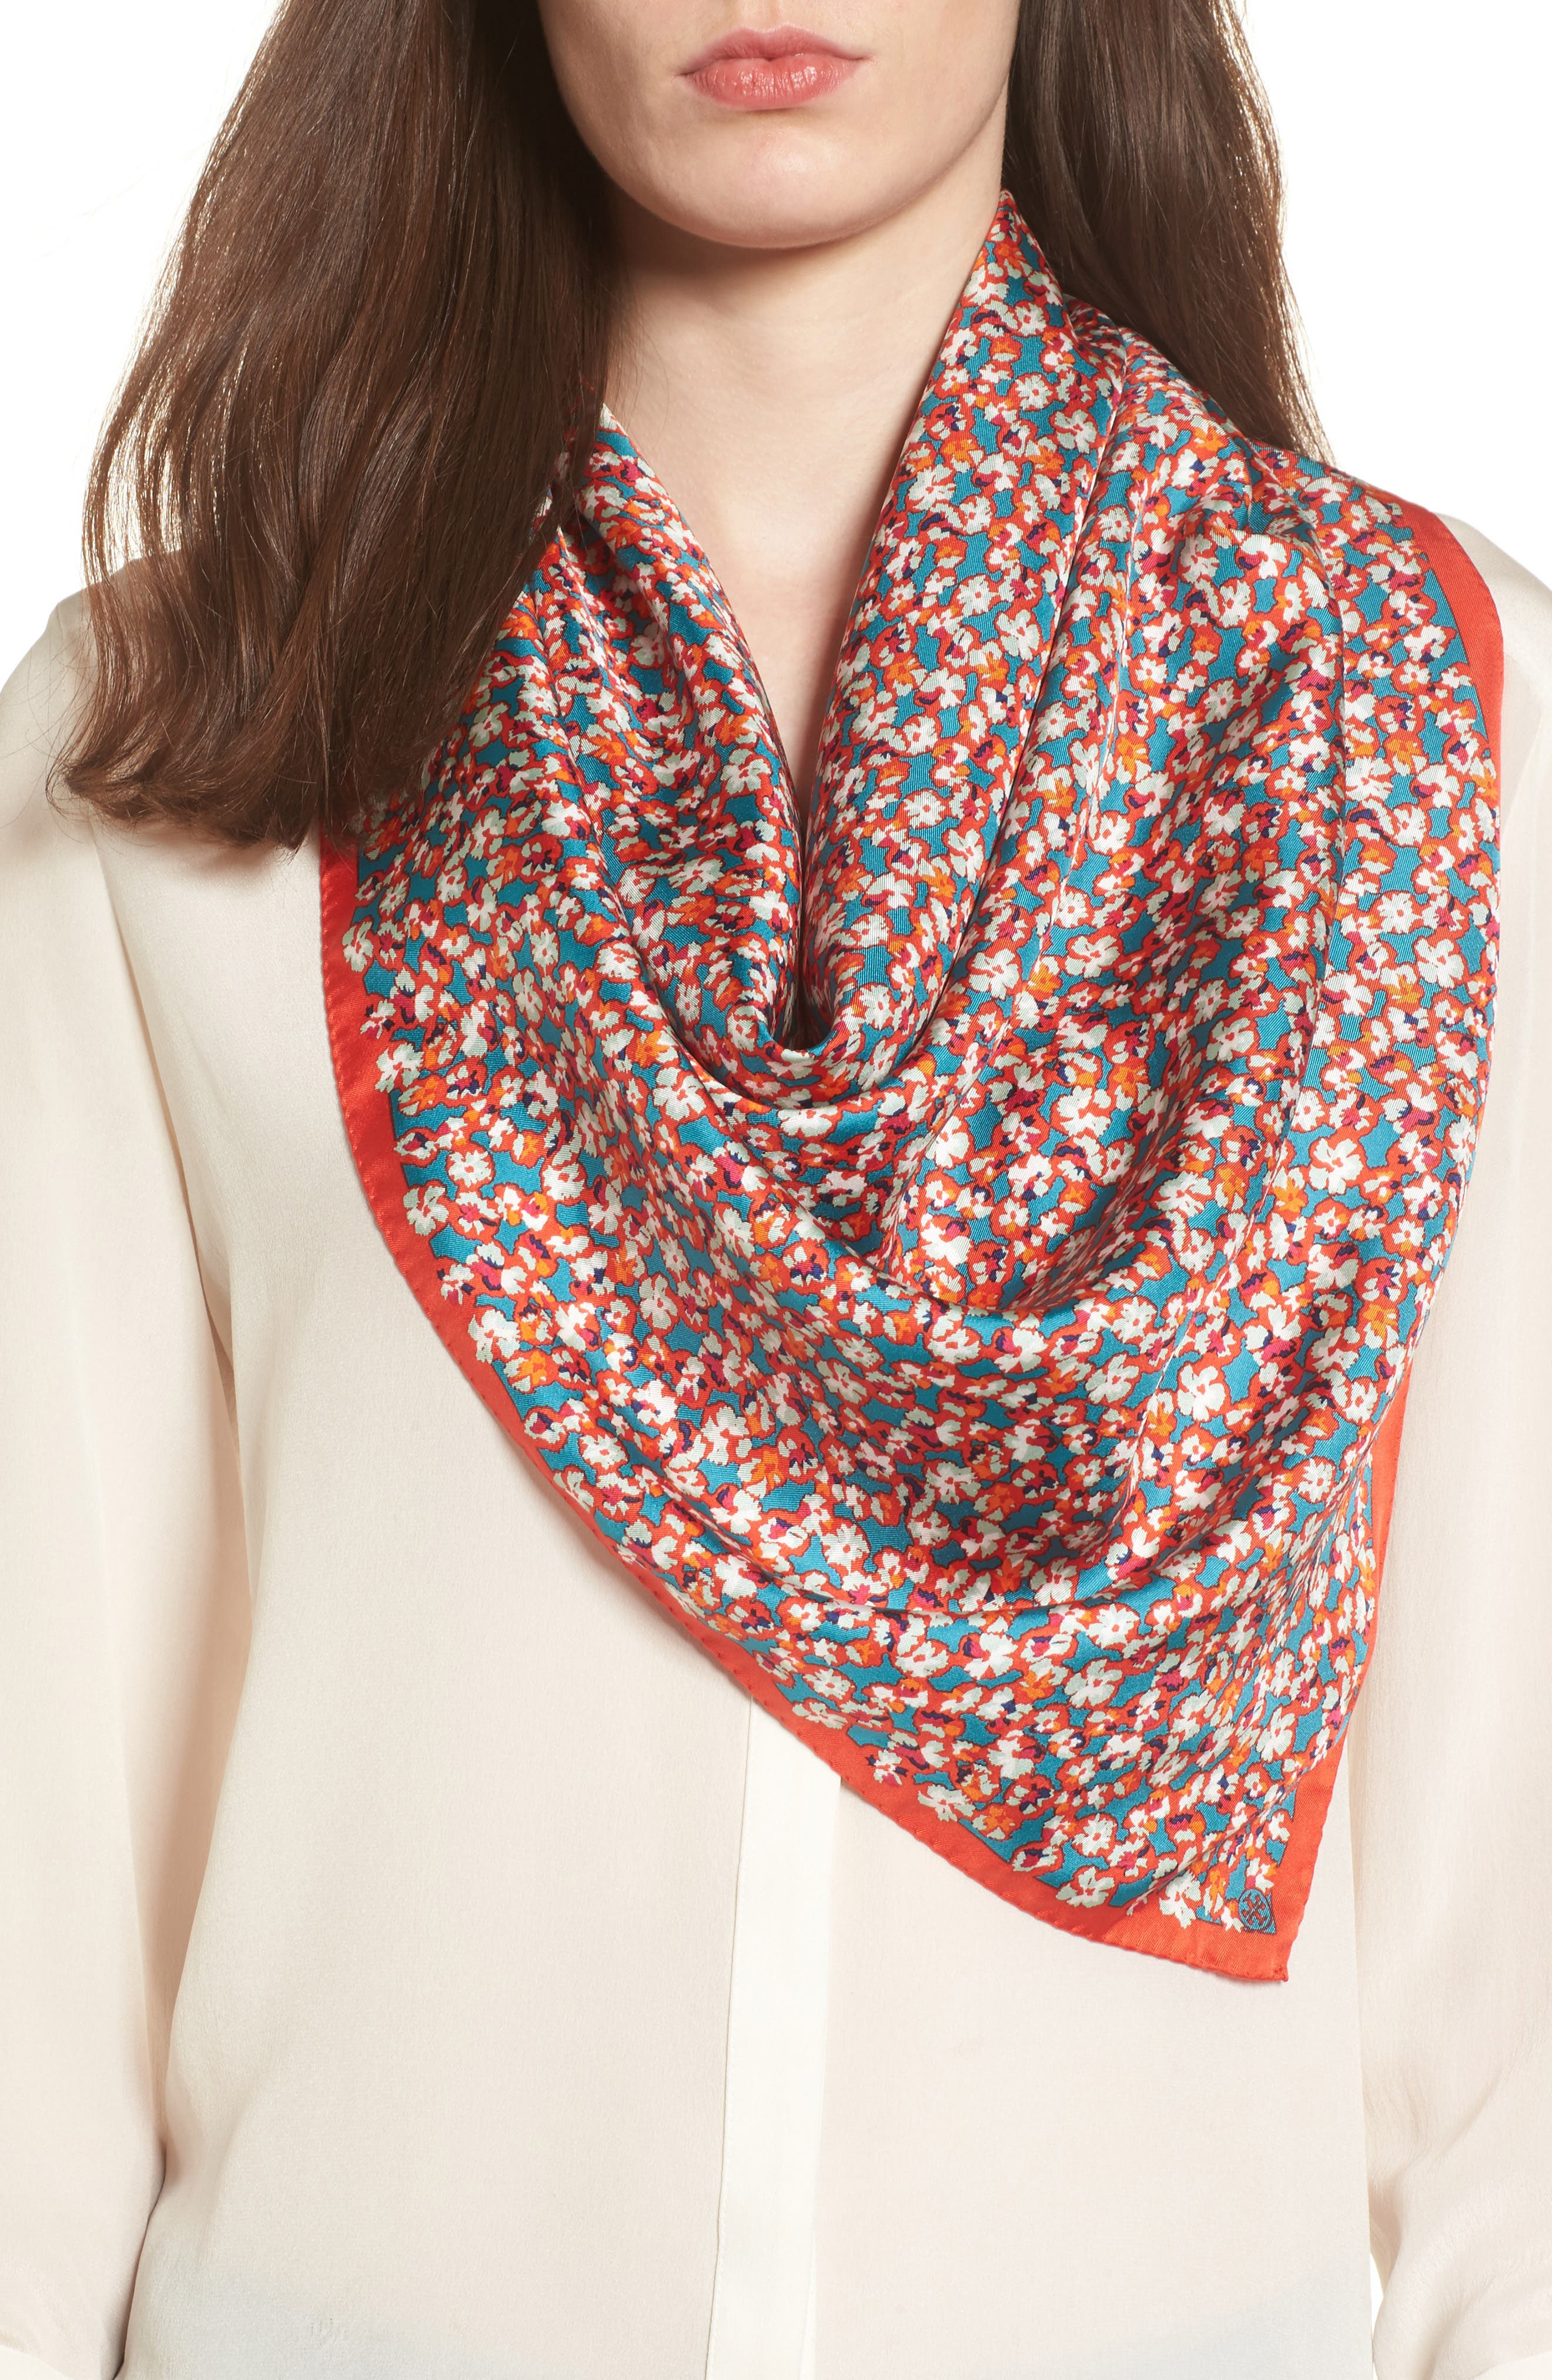 Carnation Silk Square Scarf,                         Main,                         color, Red